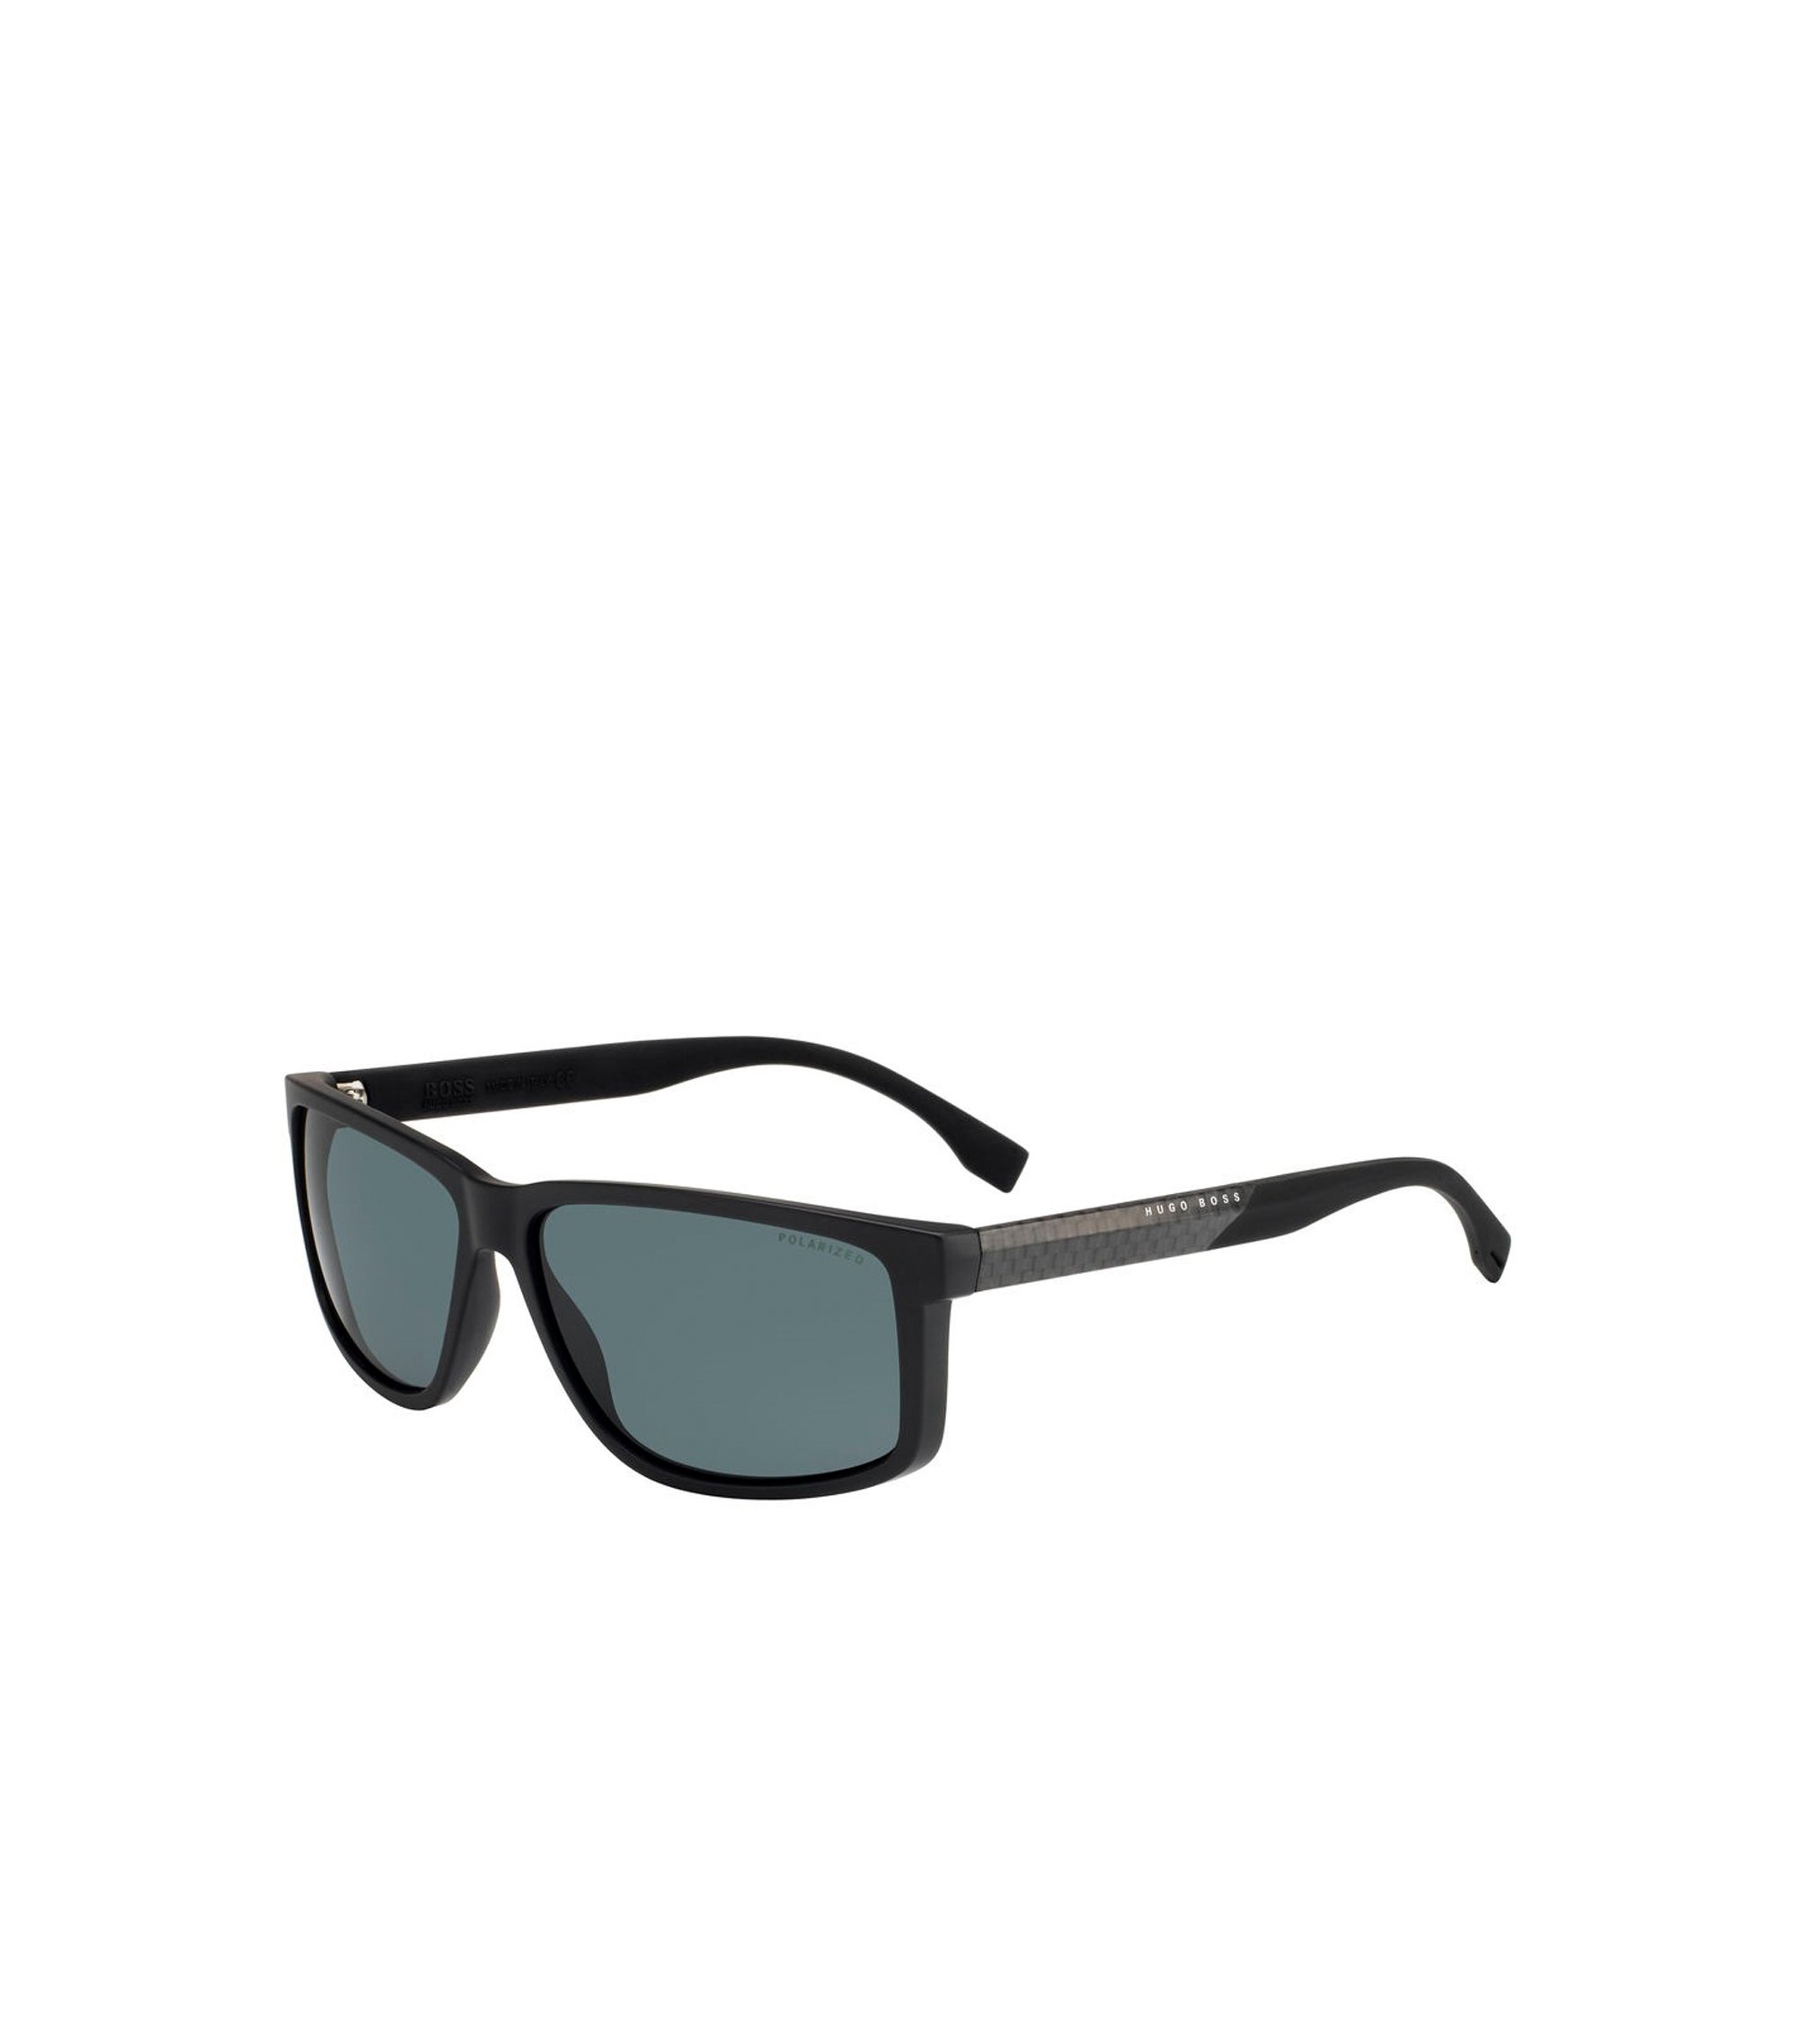 'BOSS 0833S' | Rectangular Carbon Fiber Polarized Sunglasses, Assorted-Pre-Pack